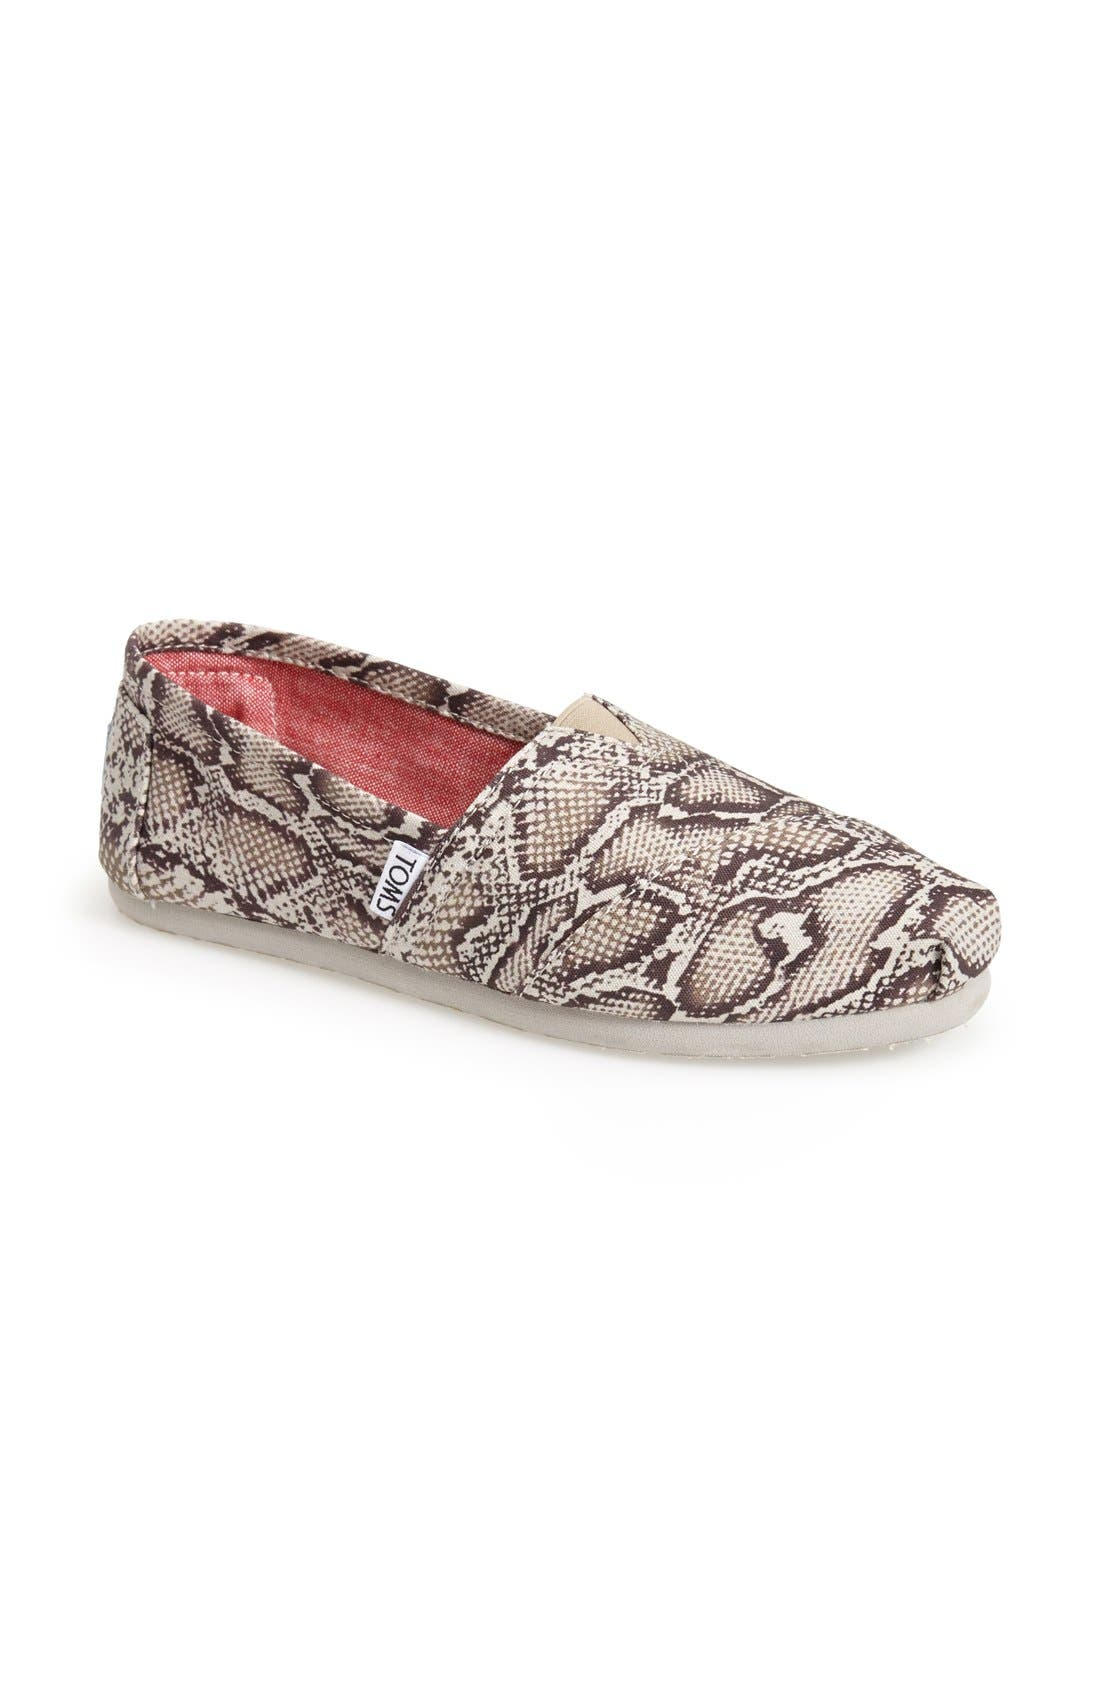 Alternate Image 1 Selected - TOMS 'Classic - Snake' Slip-On (Women)